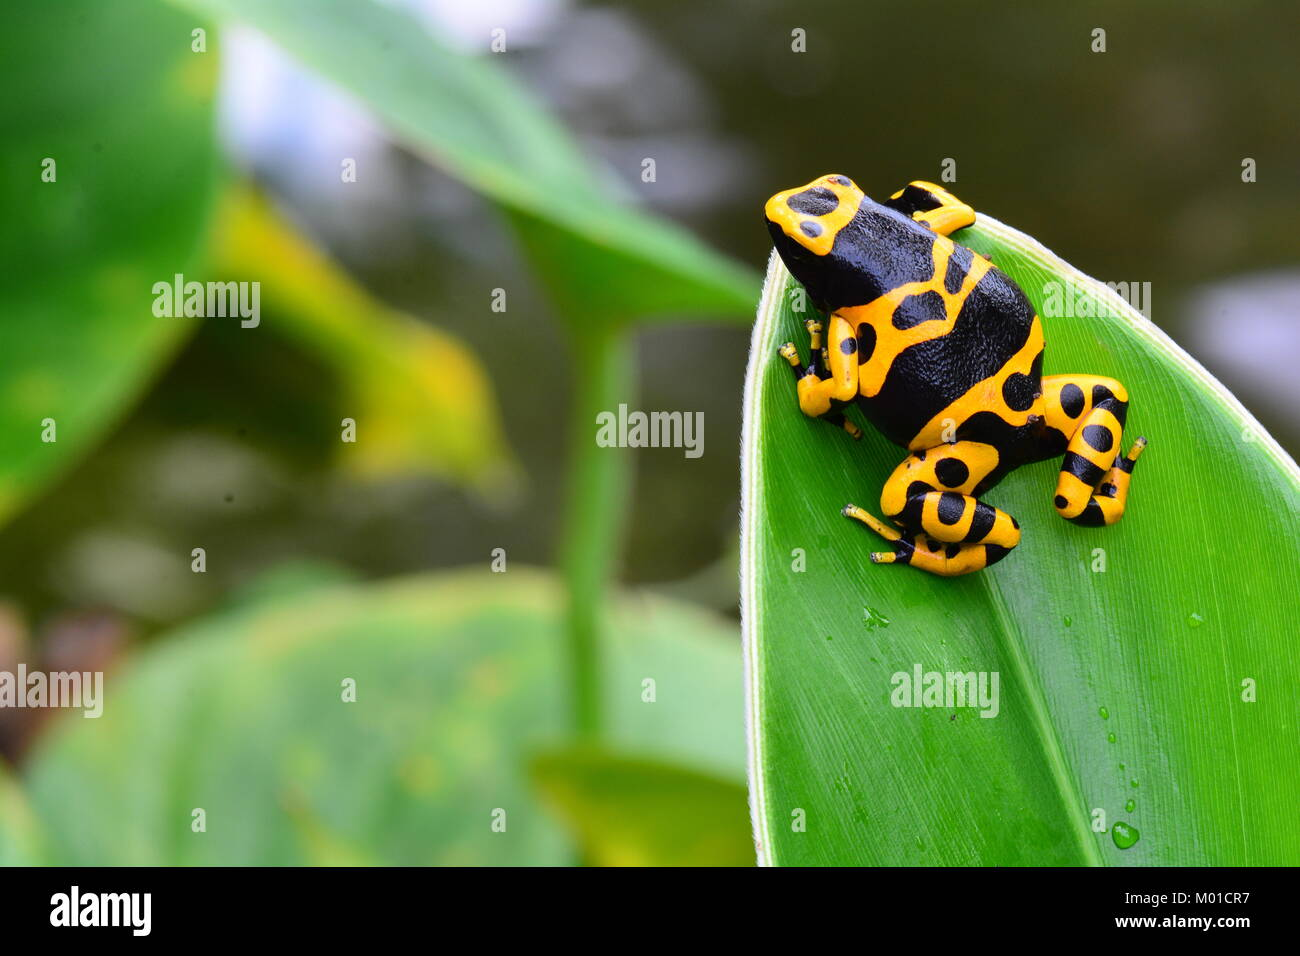 A pretty little bumble bee colored poison dart frog sits on a plant leaf in the gardens. Stock Photo